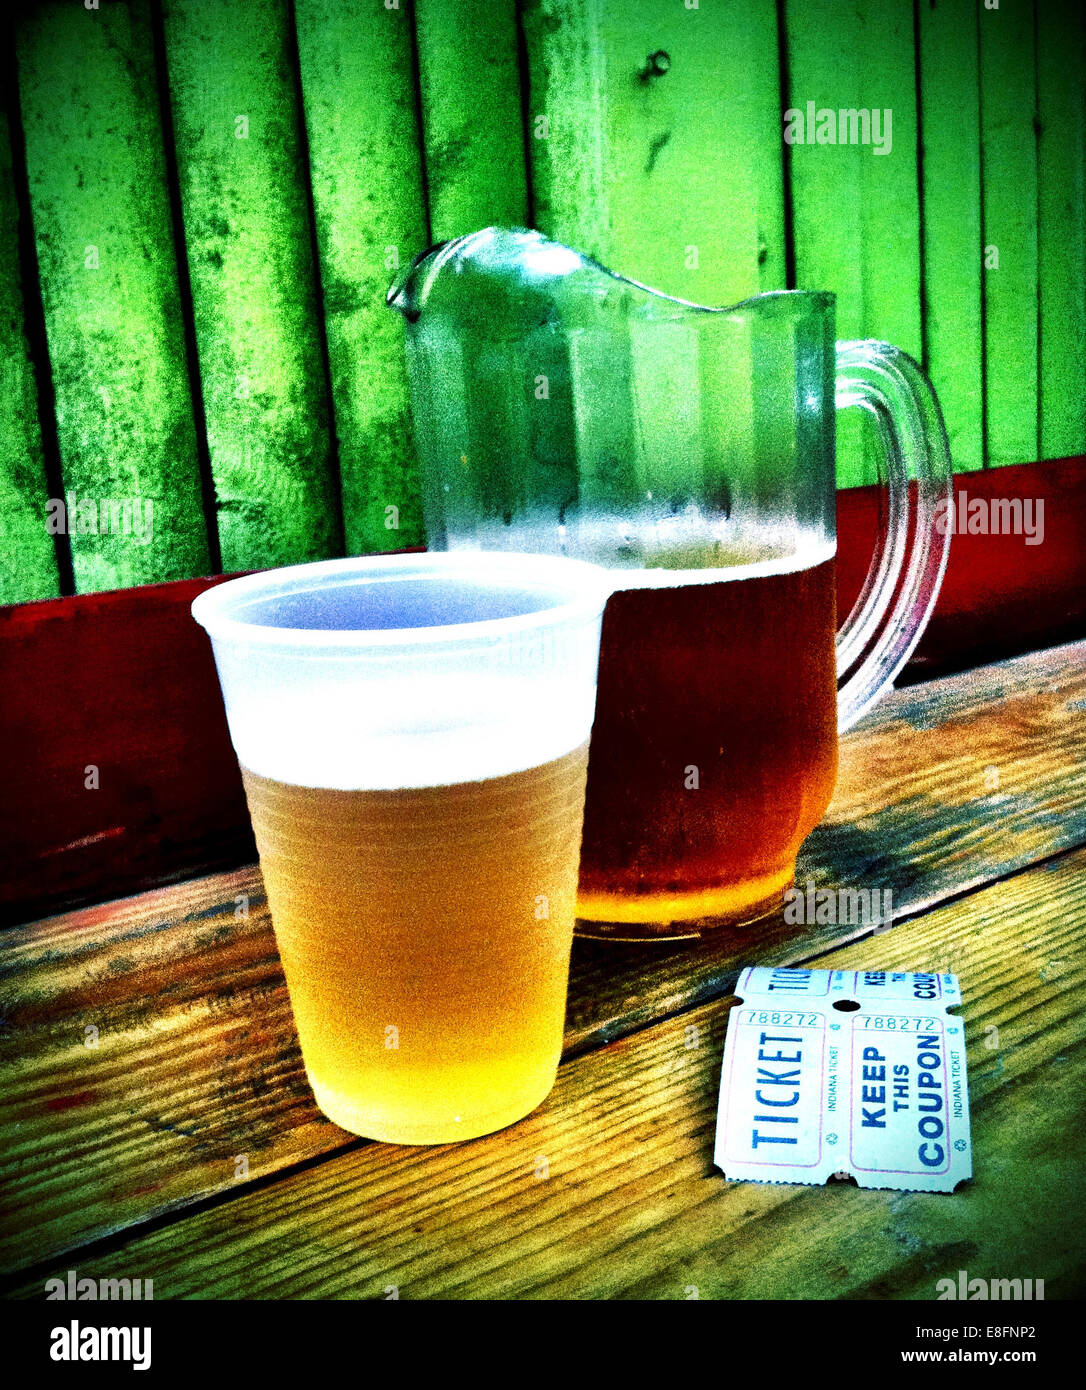 USA, New York State, New York City, Brooklyn, Beer in jug and disposable cup - Stock Image